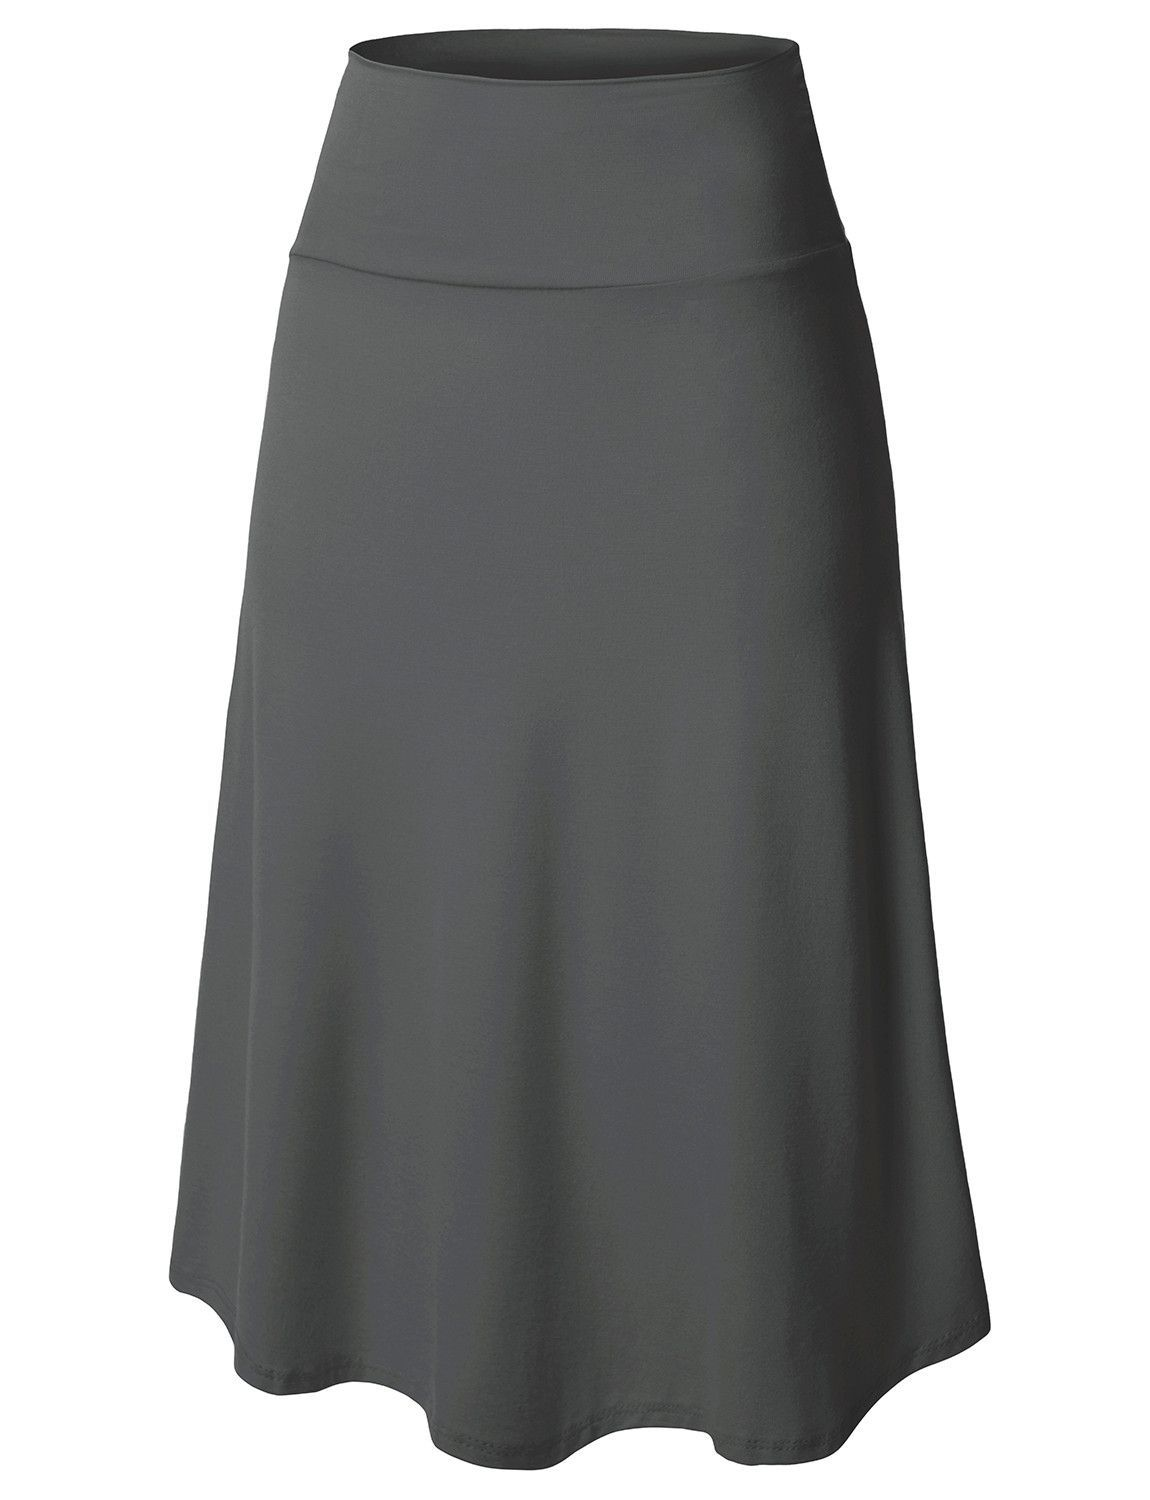 Lightweight Flared Midi Skater Skirt with Stretch (CLEARANCE) (CLEARANCE) #workattire